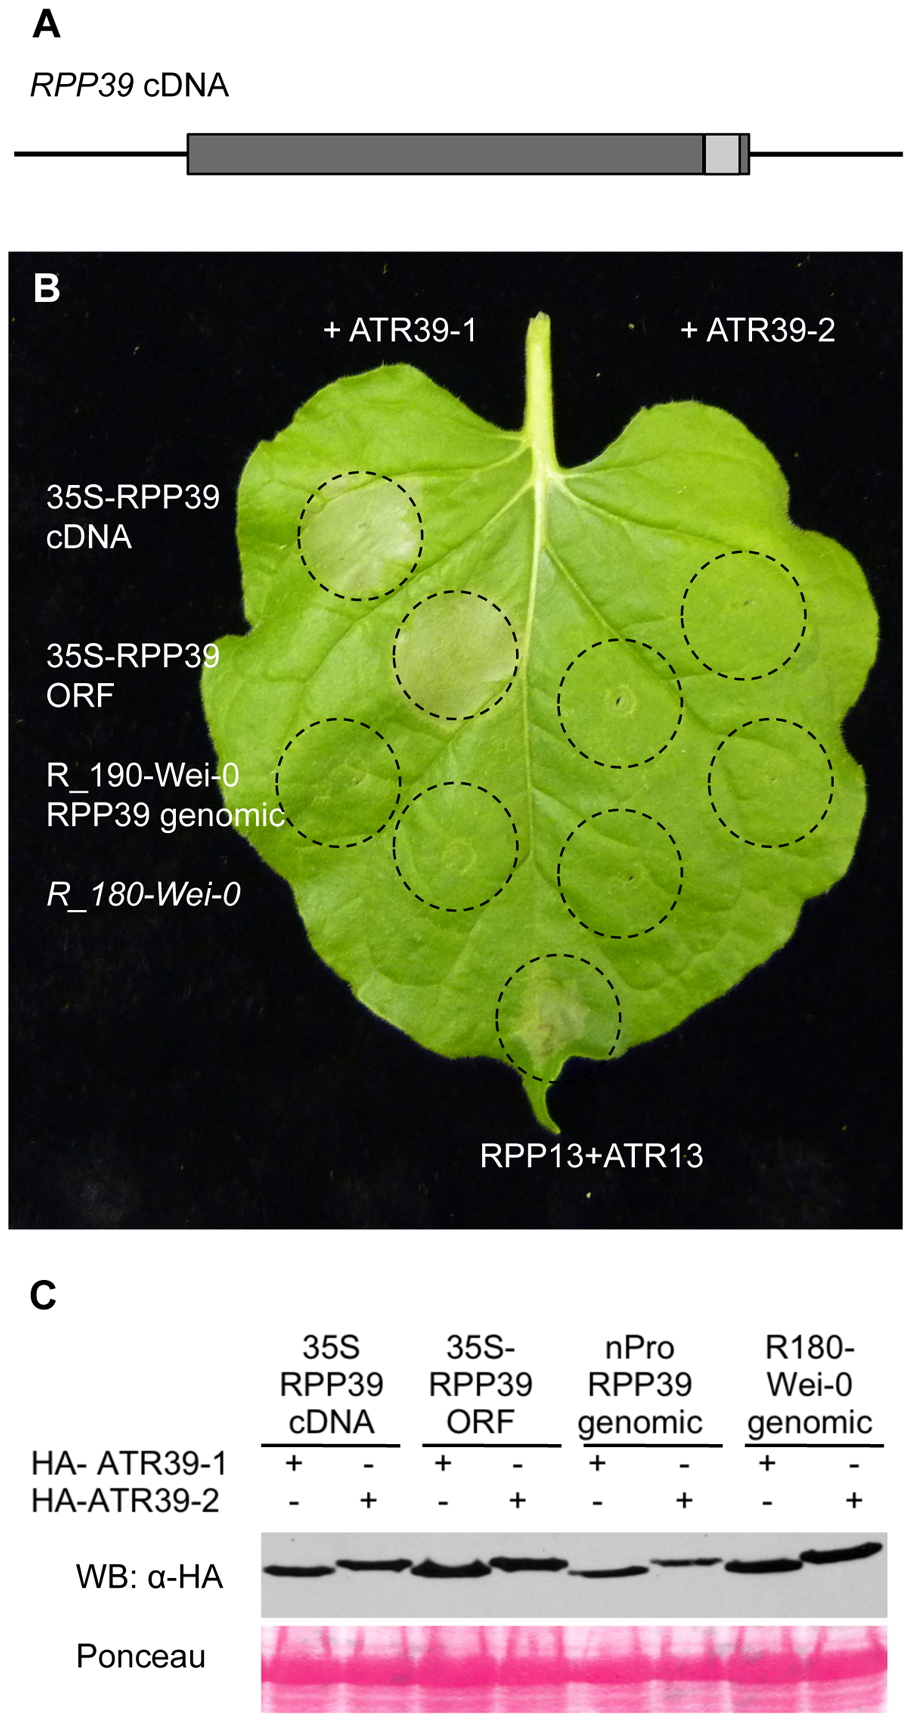 <i>RPP39</i> cDNA triggers ATR39-1–dependent HR in transient expression assays in <i>Nicotiana benthamiana</i>.